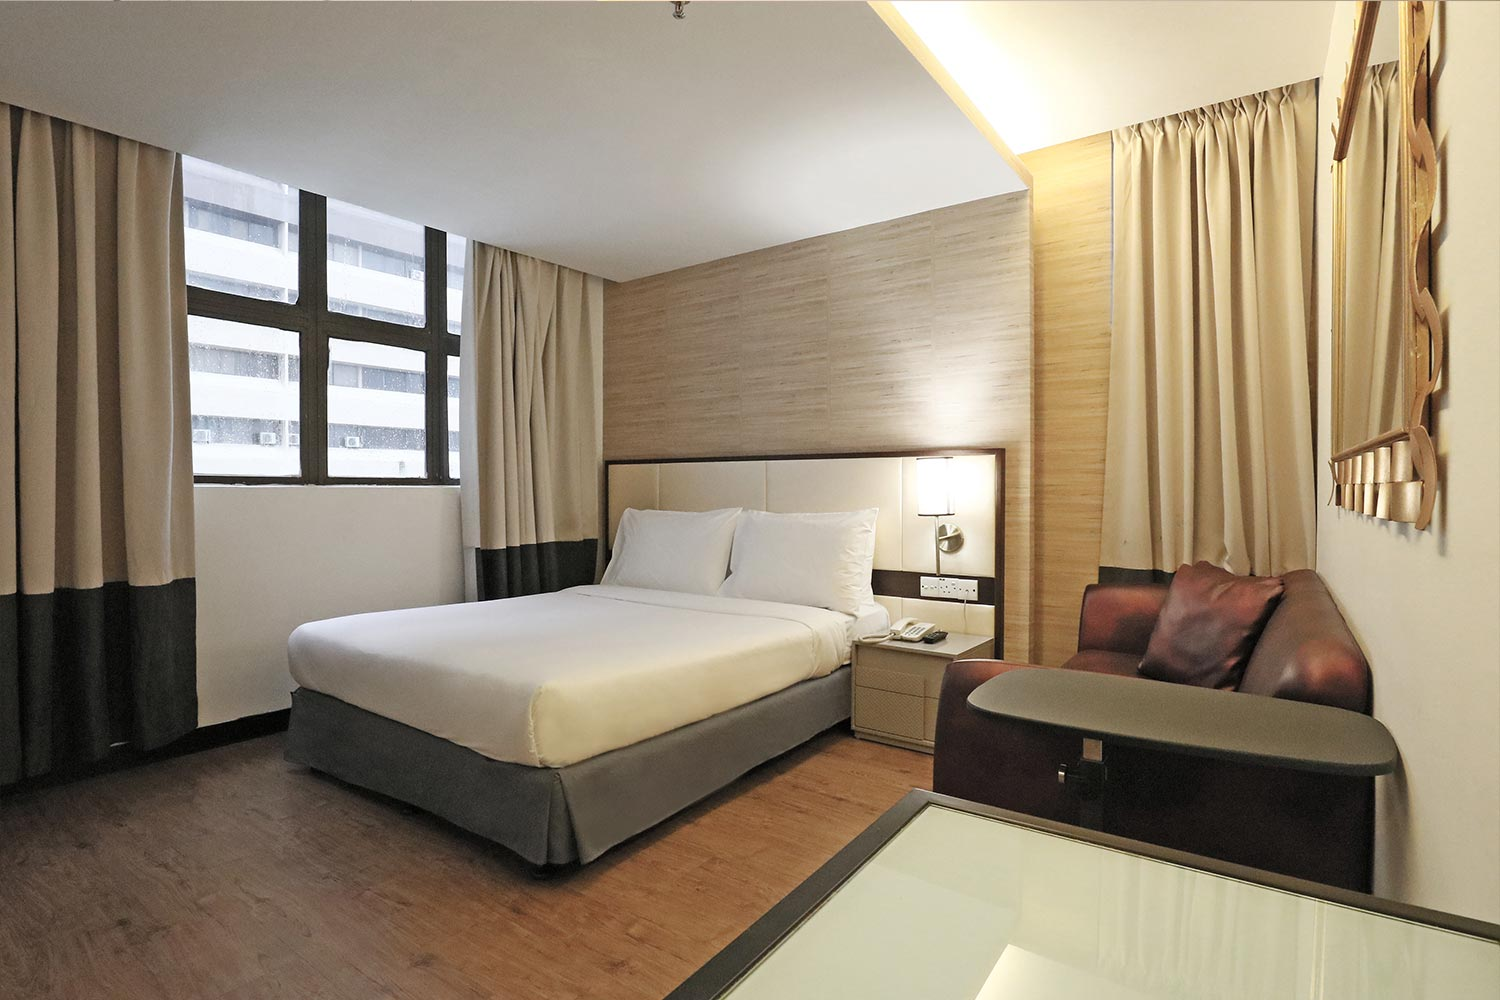 advantages of 4 star hotel disadvantages of 4 star hotel What are the benefits and disadvantages of a 5-star rating system, a 3-star rating system, and a thumbs up thumbs down rating system hotel, book, or movie.